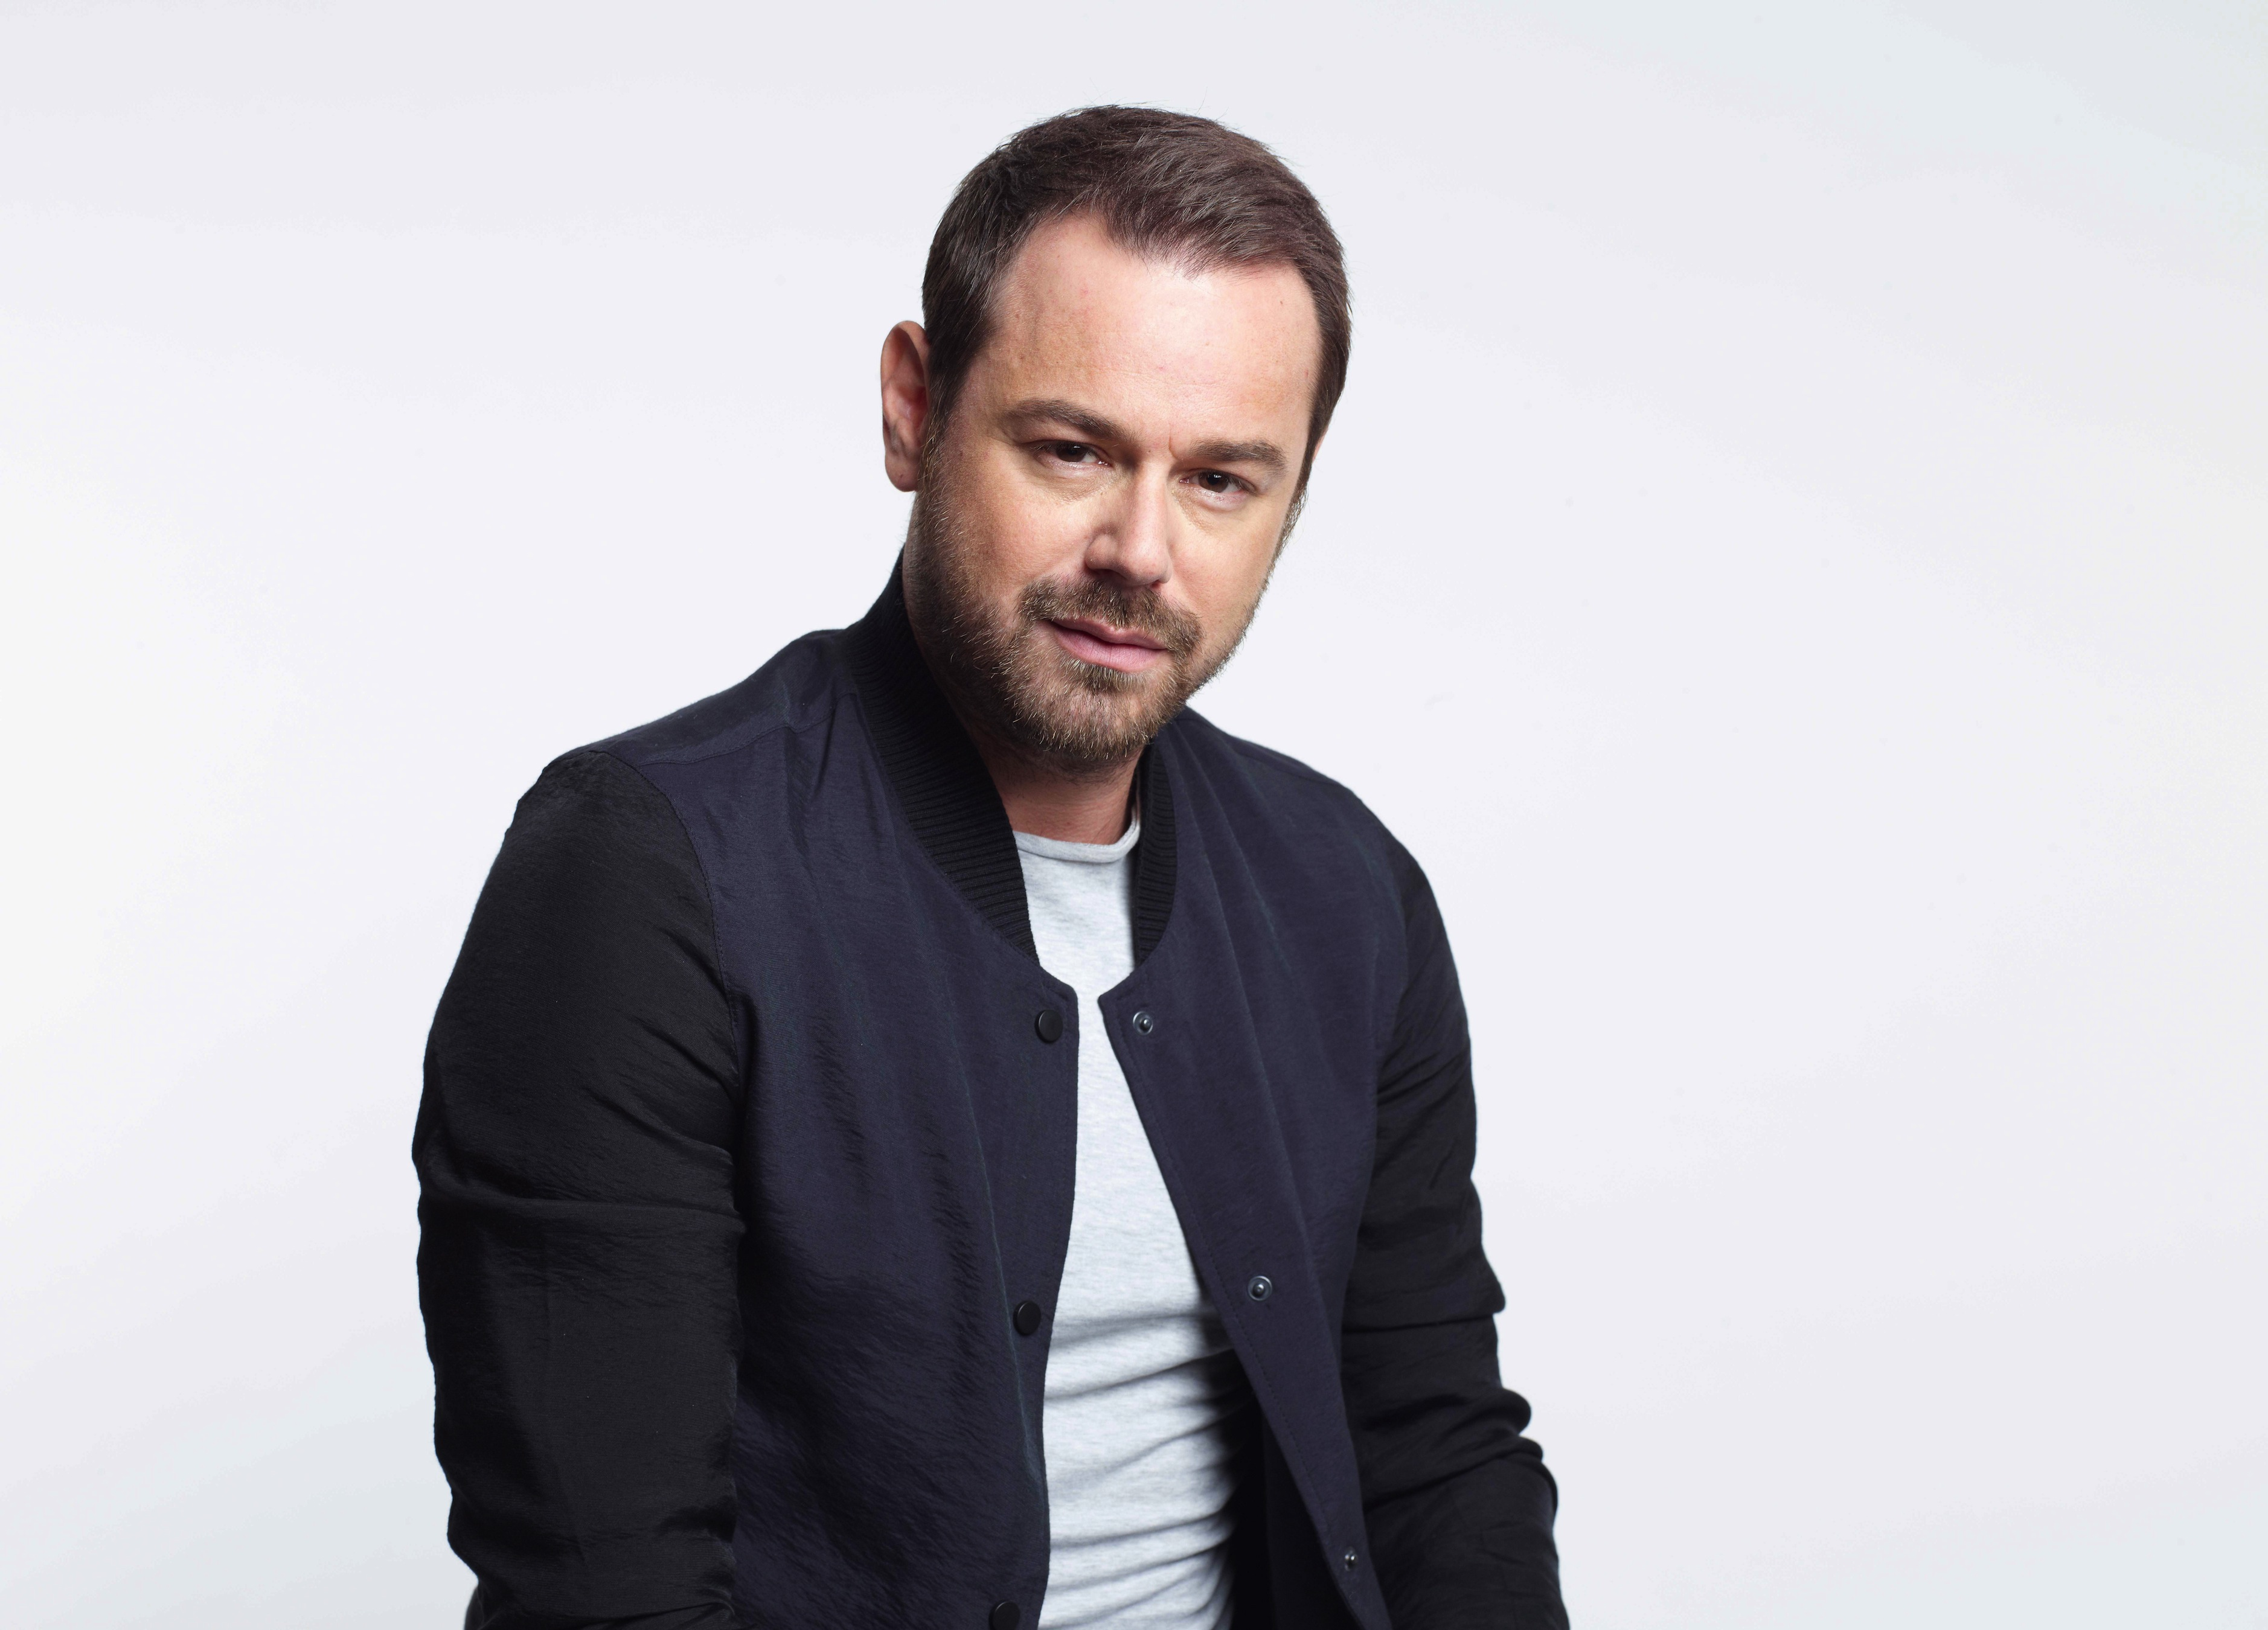 danny dyer wifedanny dyer kinopoisk, danny dyer quotes, danny dyer oasis, danny dyer football, danny dyer 2016, danny dyer wife, danny dyer net worth, danny dyer harold pinter, danny dyer richard, danny dyer talking, danny dyer aliens, danny dyer dundee, danny dyer films, danny dyer 007, danny dyer king, danny dyer amy winehouse, danny dyer instagram, danny dyer football factory, danny dyer twitter, danny dyer facebook